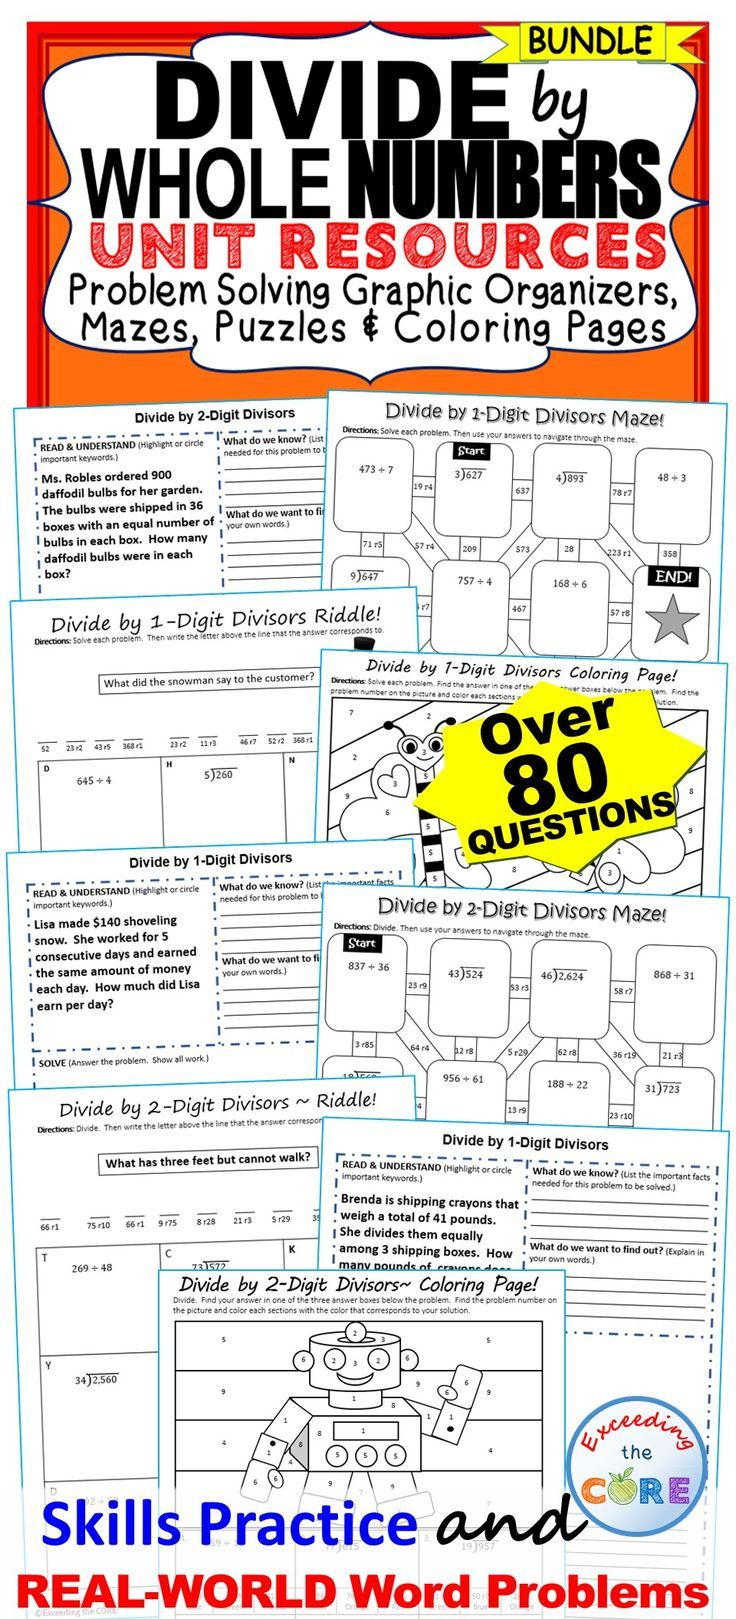 DIVIDE by 1-DIGIT & 2-DIGIT NUMBERS BUNDLE - Includes 20 problem solving graphic organizers, 2 mazes, 2 riddles, 2 coloring activities (over 88 skills practice and real-world word problems). The resources in this bundle are perfect for warm-ups, cooperative learning, spiral review, math centers, assessment prep and homework.  Topics included: Divide 3- and 4-digit Dividends by 2-Digit Divisor, Solve Real-World Word Problems 5th grade math Common Core 5.NBT.6